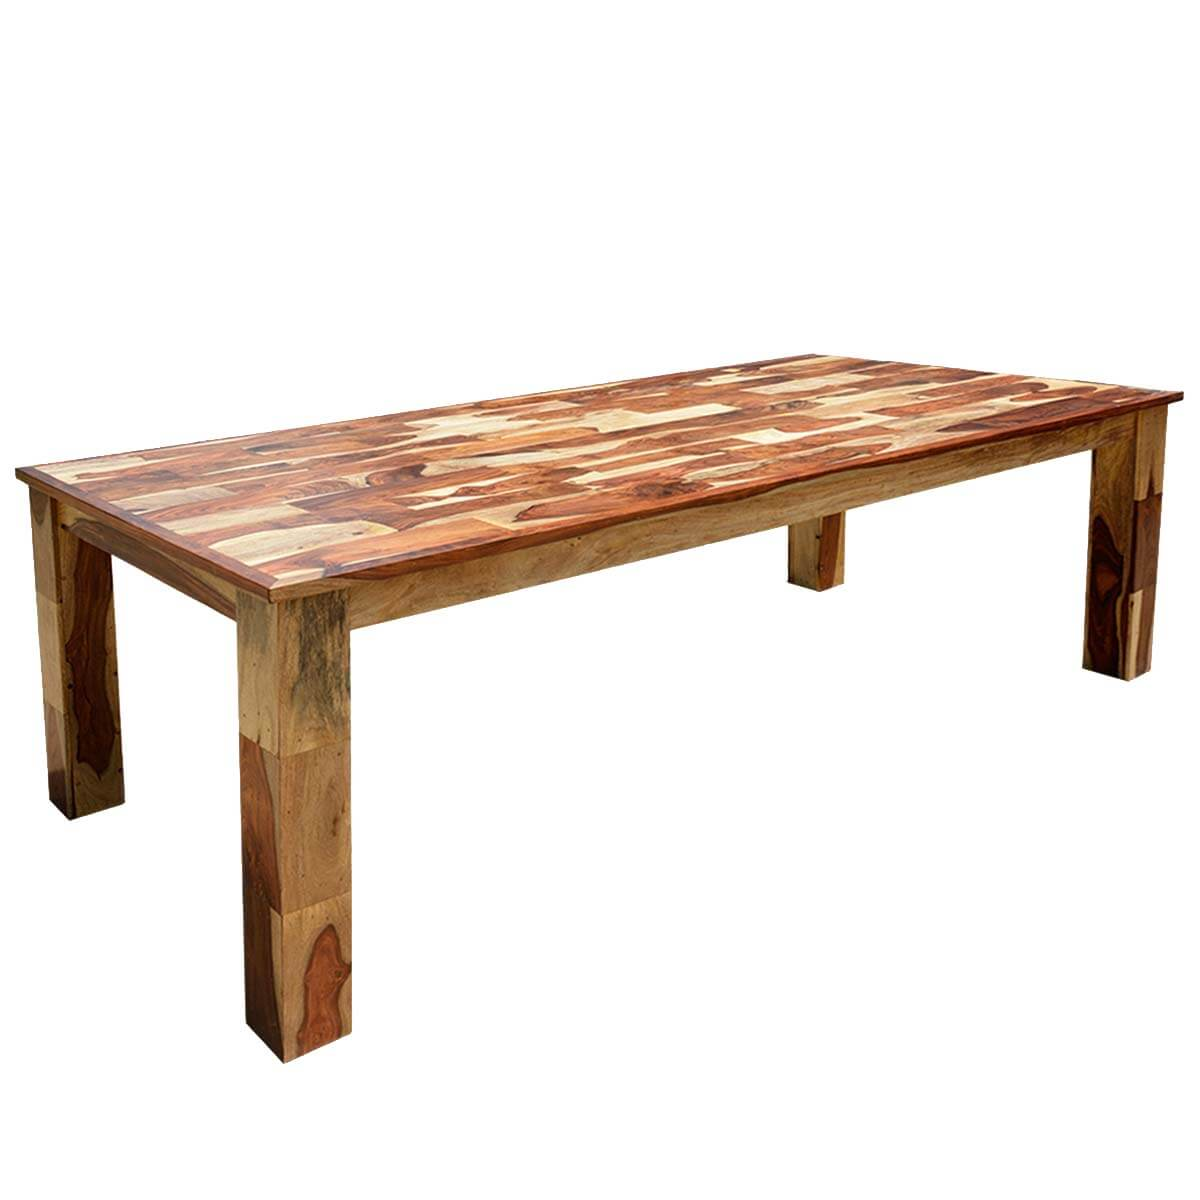 Cariboo rustic solid wood large rectangular dining table for Dinner table wood